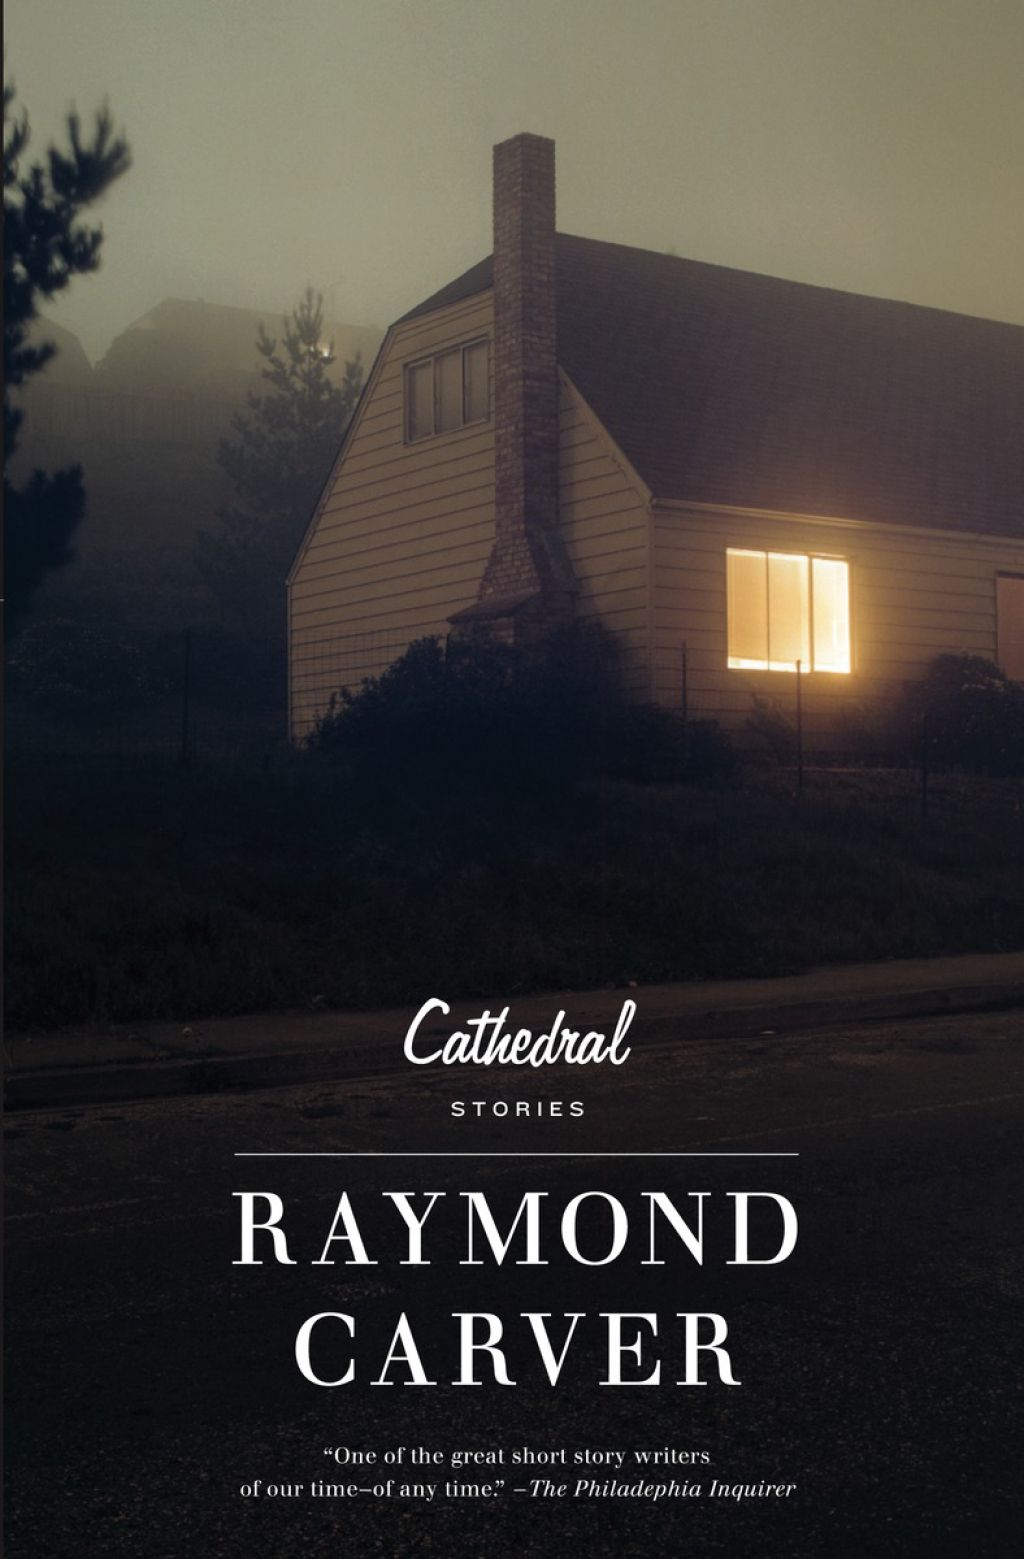 Cathedral ebook raymond carver great short stories